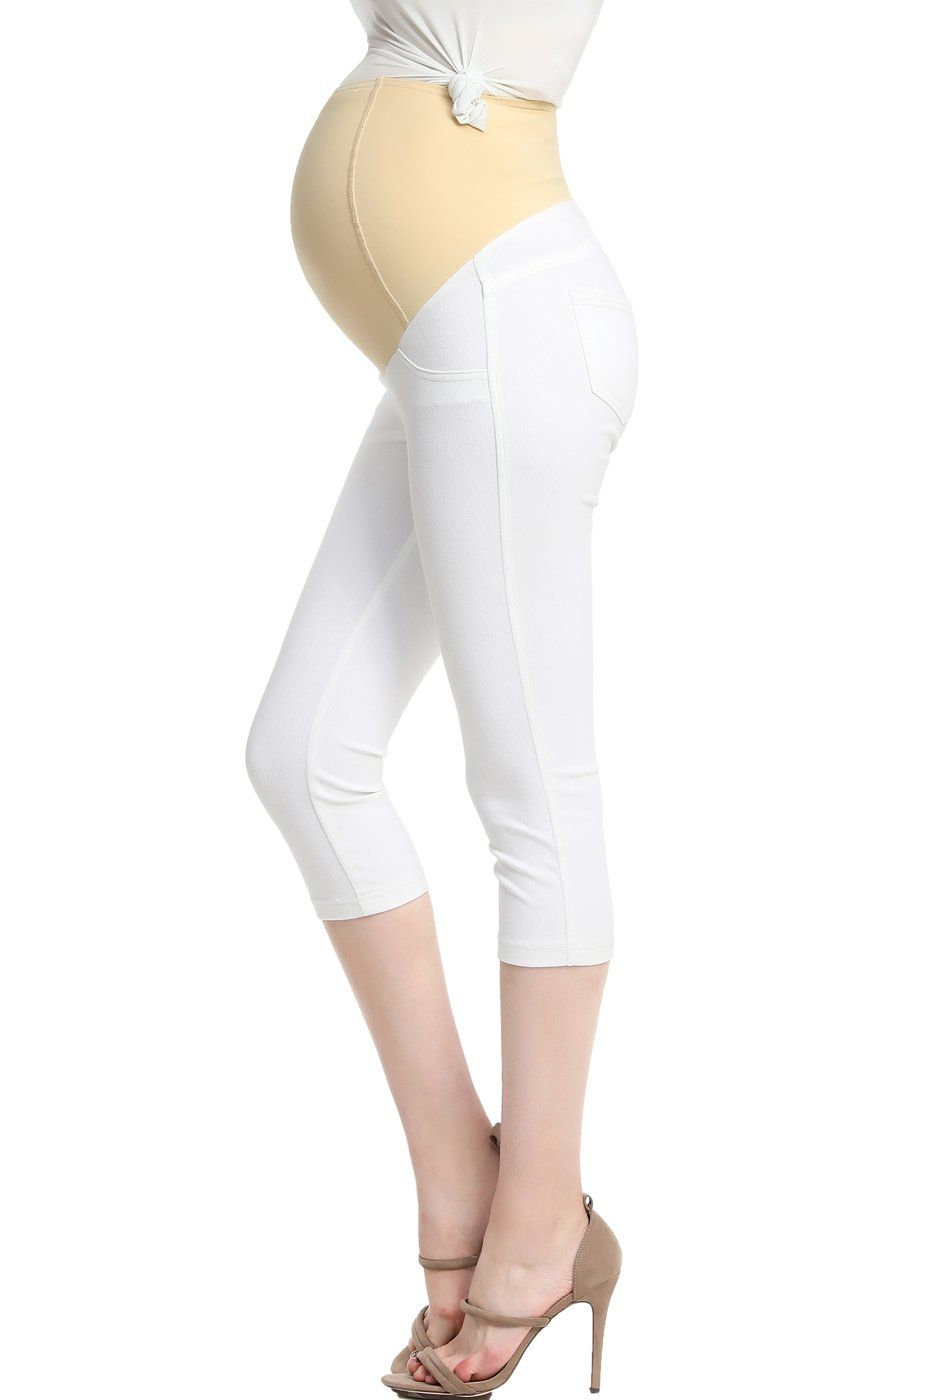 7476c3058f224 Maternity Outfits - oversized maternity leggings : Momo Maternity Womens  Capri Jeggings White S >>> Check out this great product. (This is an  affiliate ...